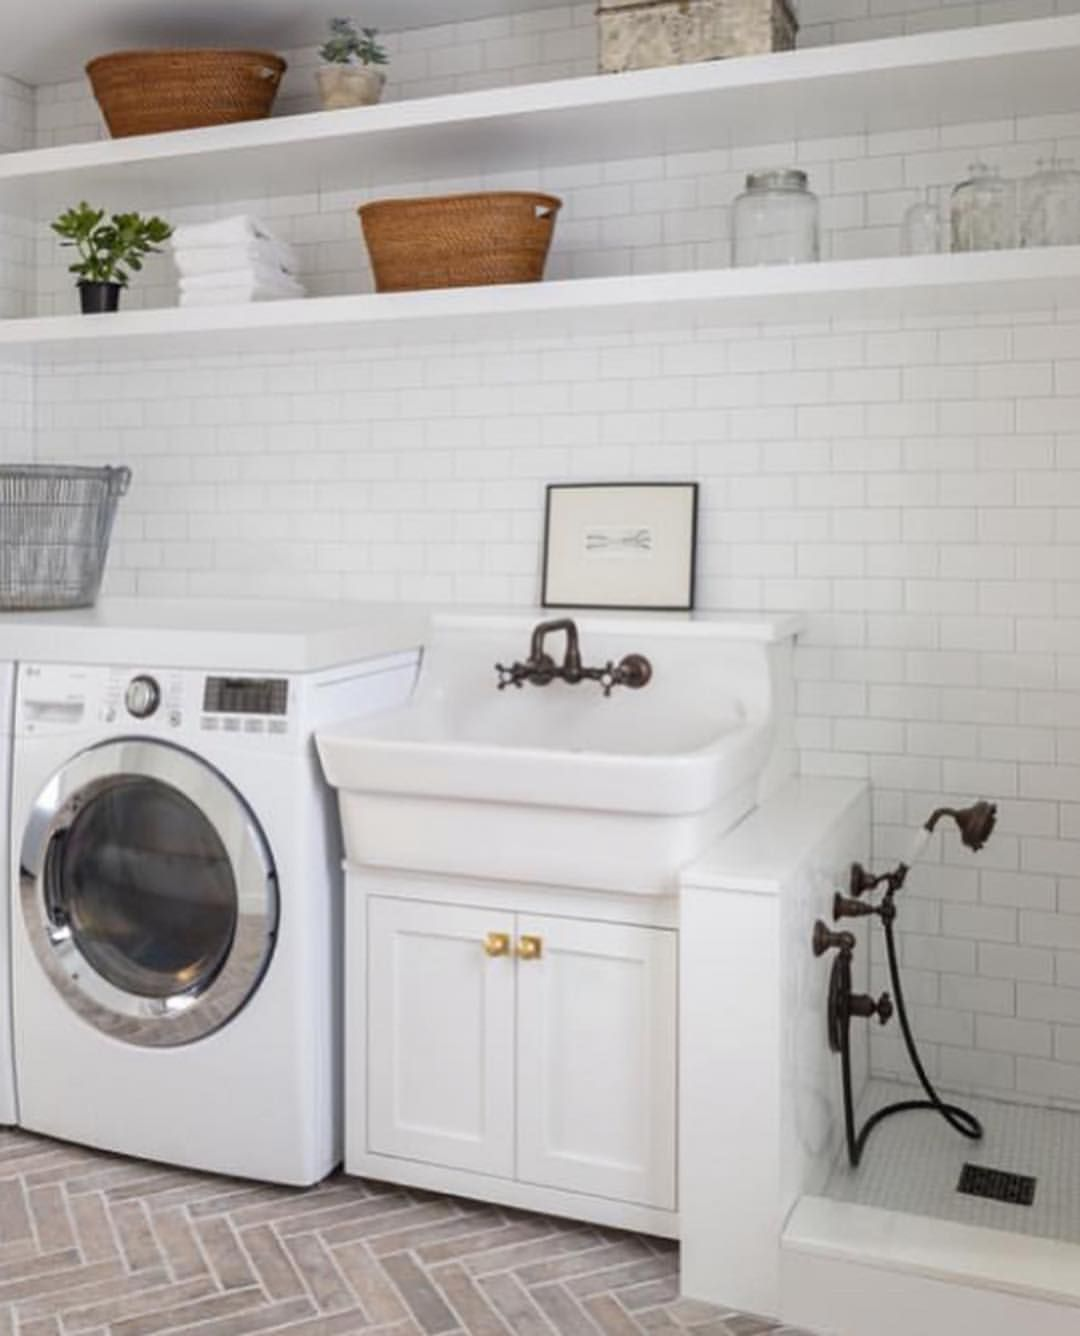 While We Do Not Have A Dog I Think Adding A Puppy Shower To Your Laundry Room Is Ingenious As Dir Stylish Laundry Room Laundry Room Design Dream Laundry Room